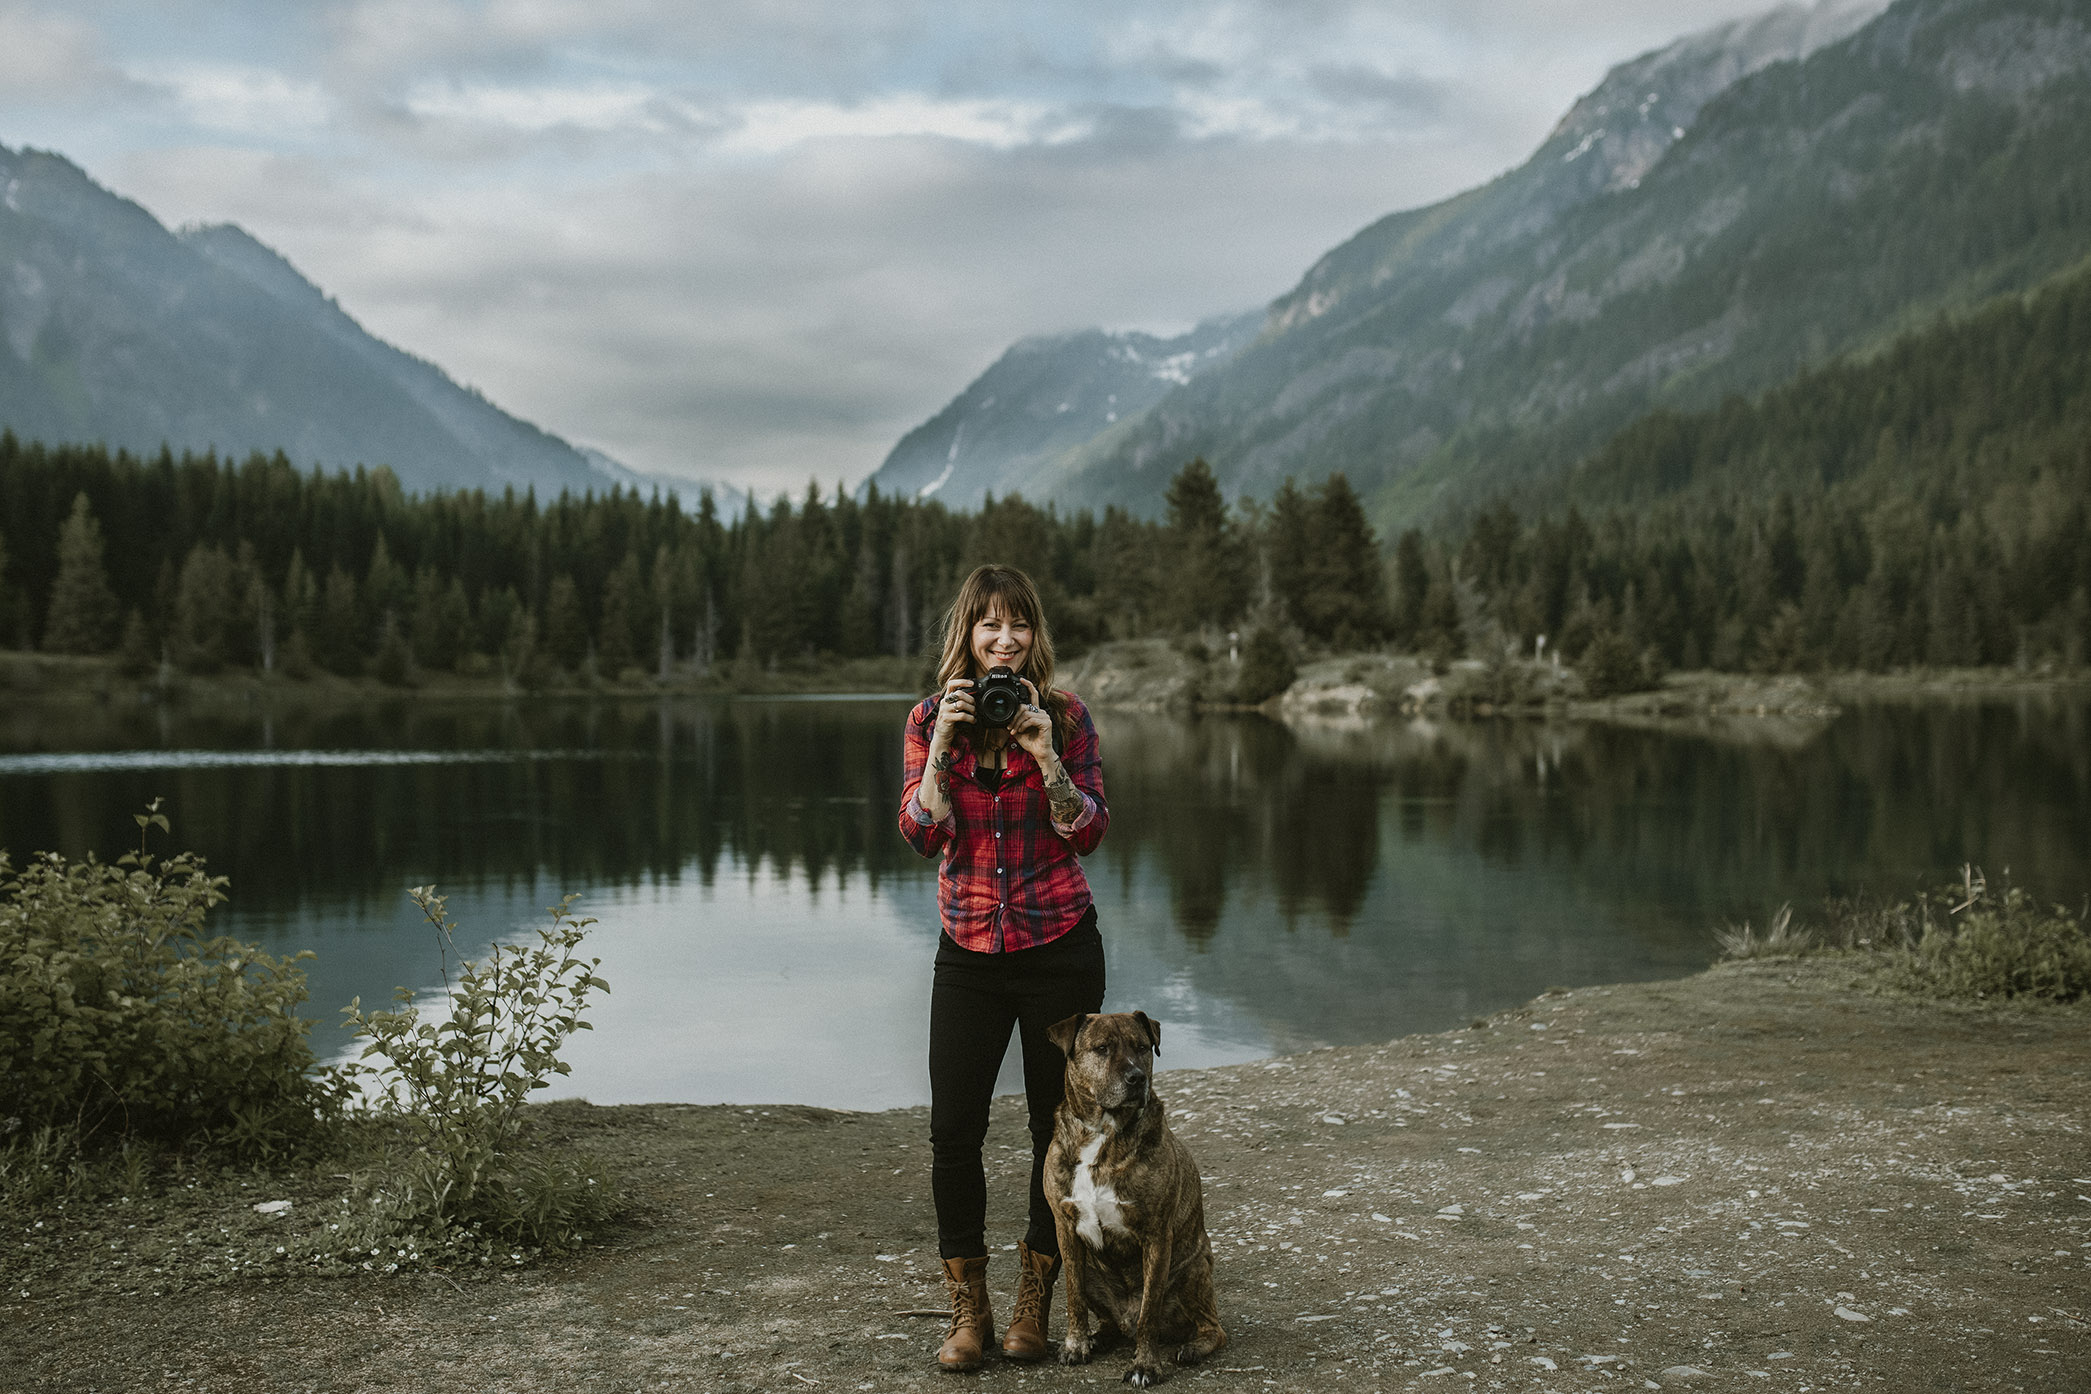 - ABOUT DAWNDRAFind out about this Seattle Portrait PhotographerWho is Dawndra anyway?